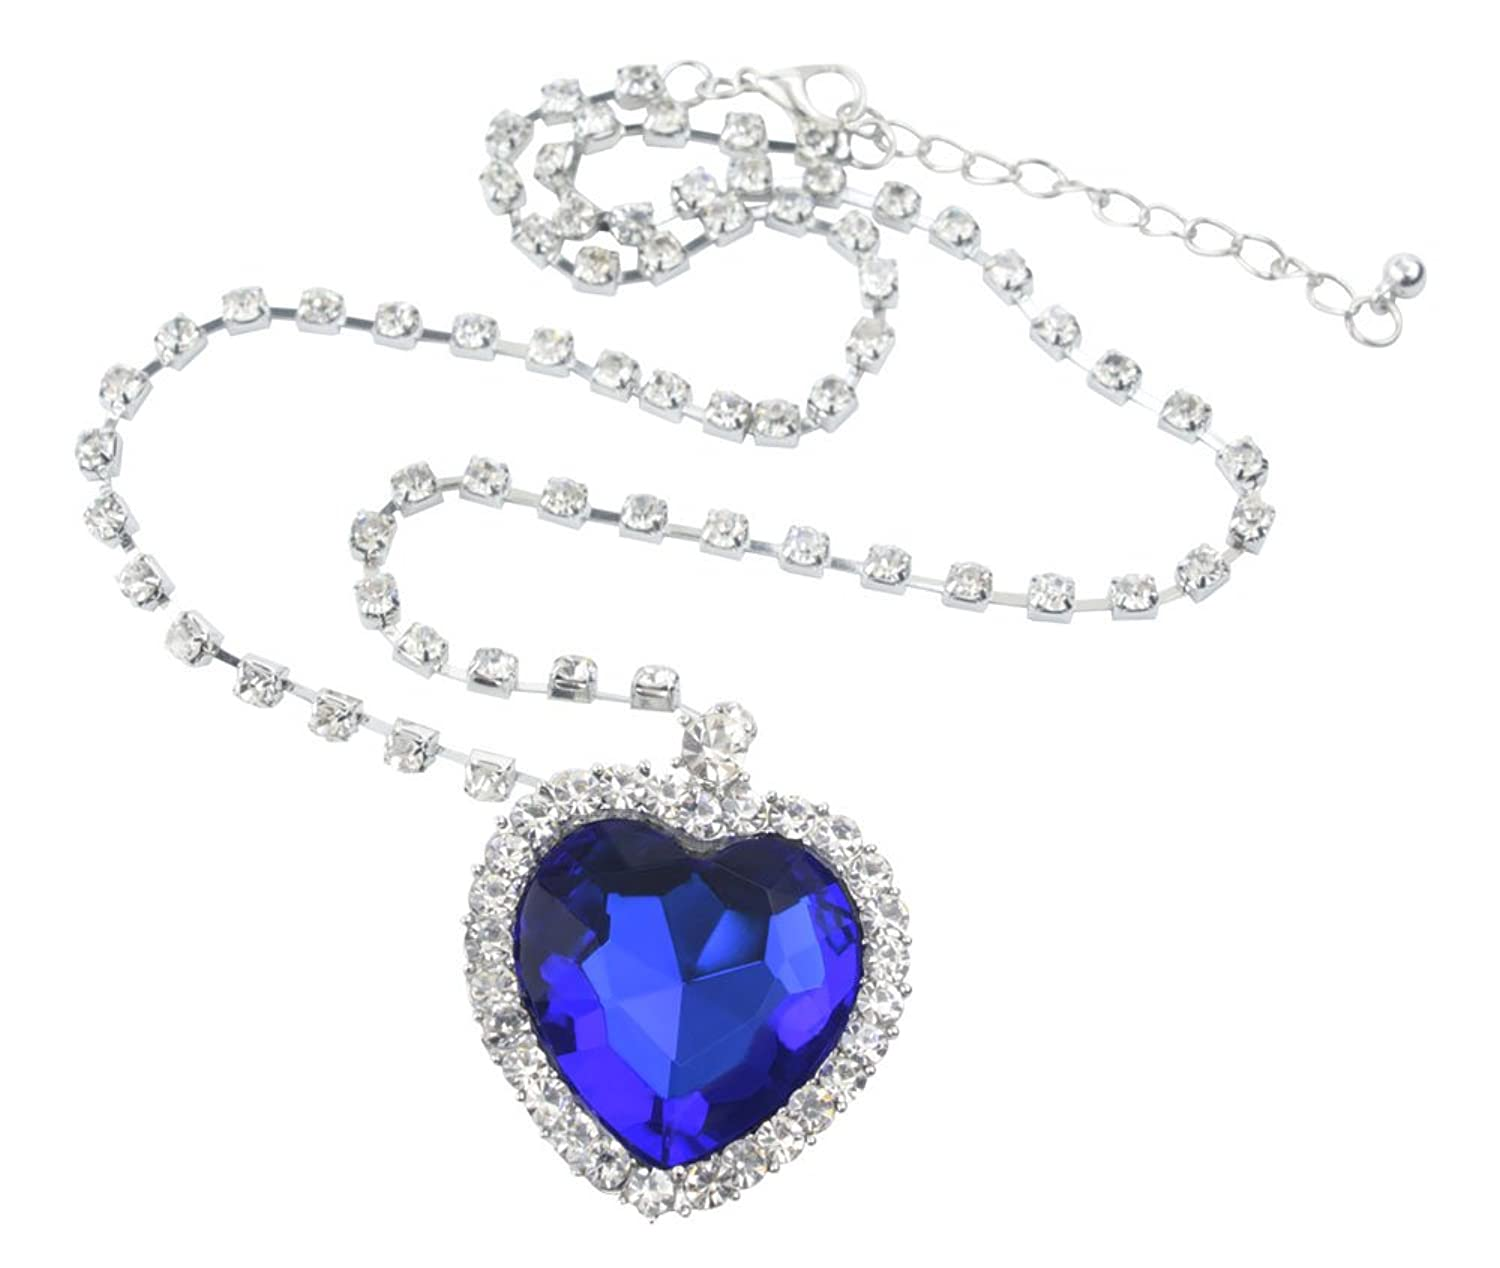 Wma blue heart of ocean titanic crystal necklace pendant with wma blue heart of ocean titanic crystal necklace pendant with chain perfect gift amazon jewellery aloadofball Image collections